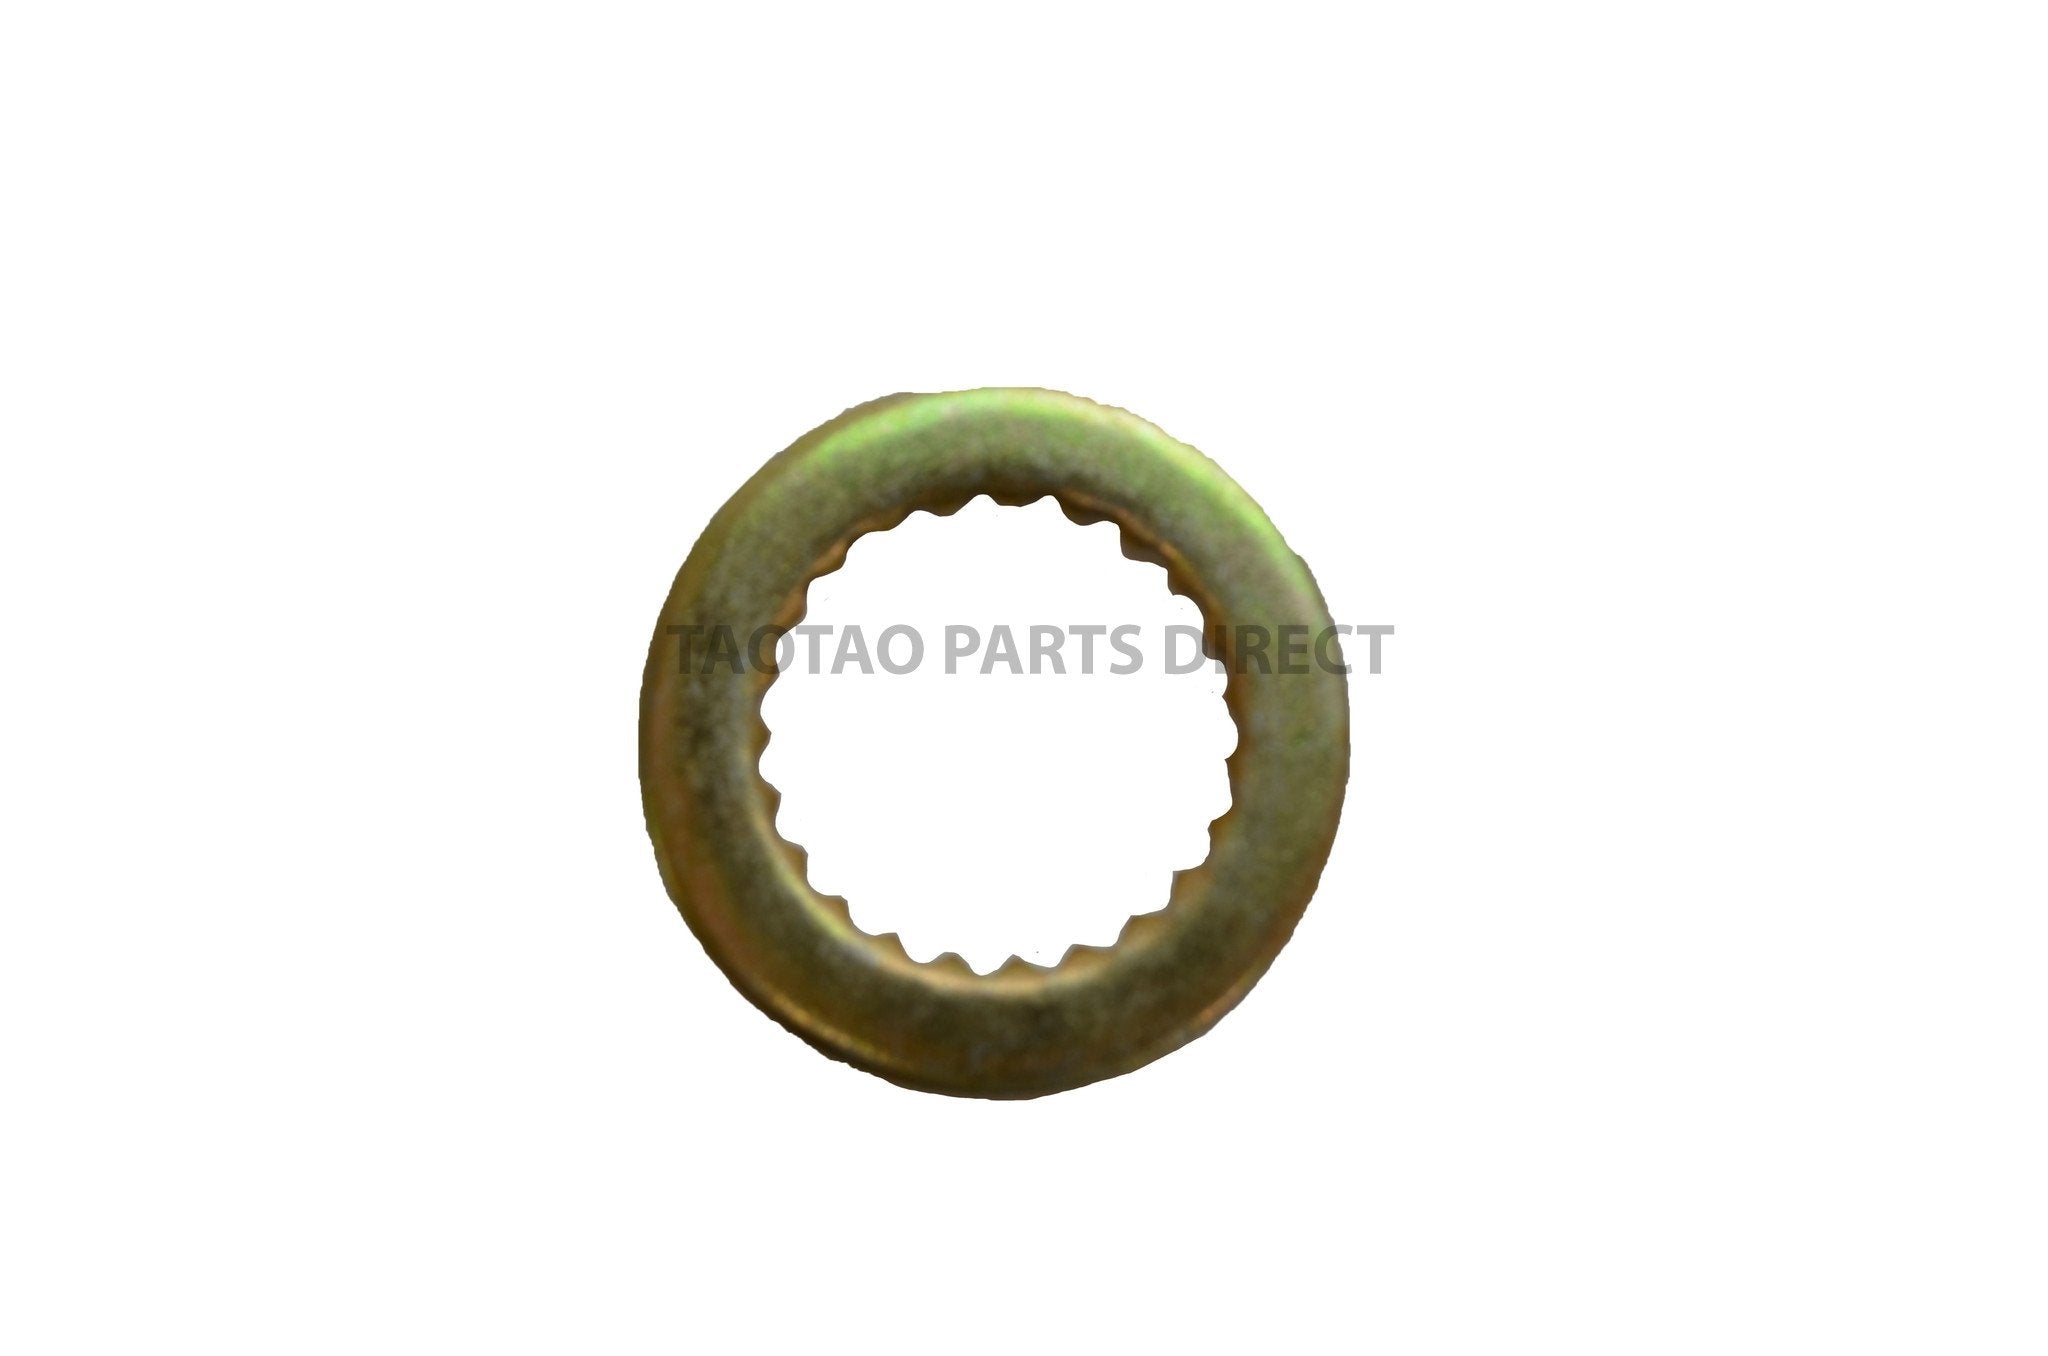 Rear Axle Spline Washer - TaoTaoPartsDirect.com